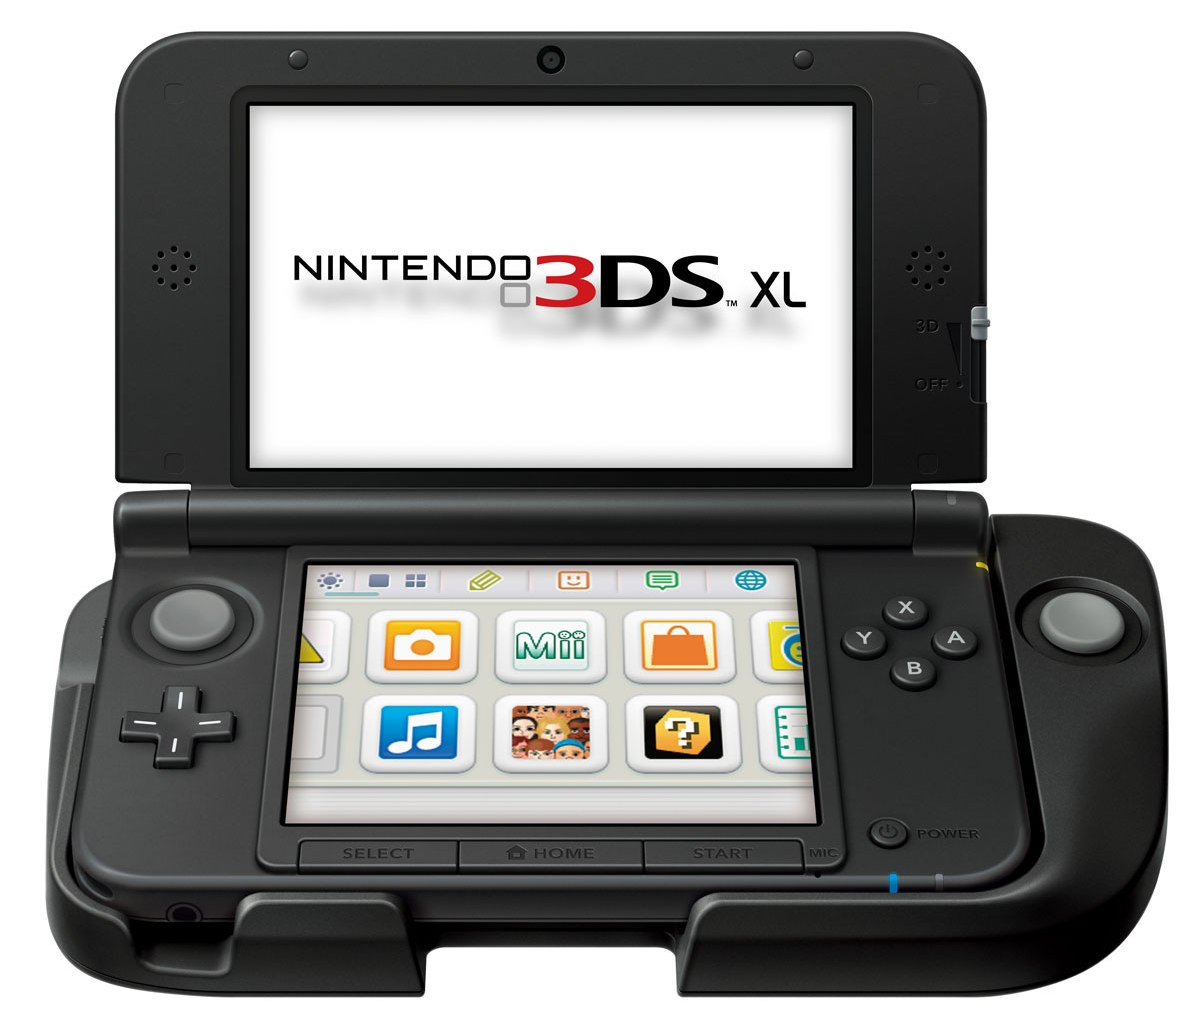 Original Nintendo 3DS will soon support Amiibo